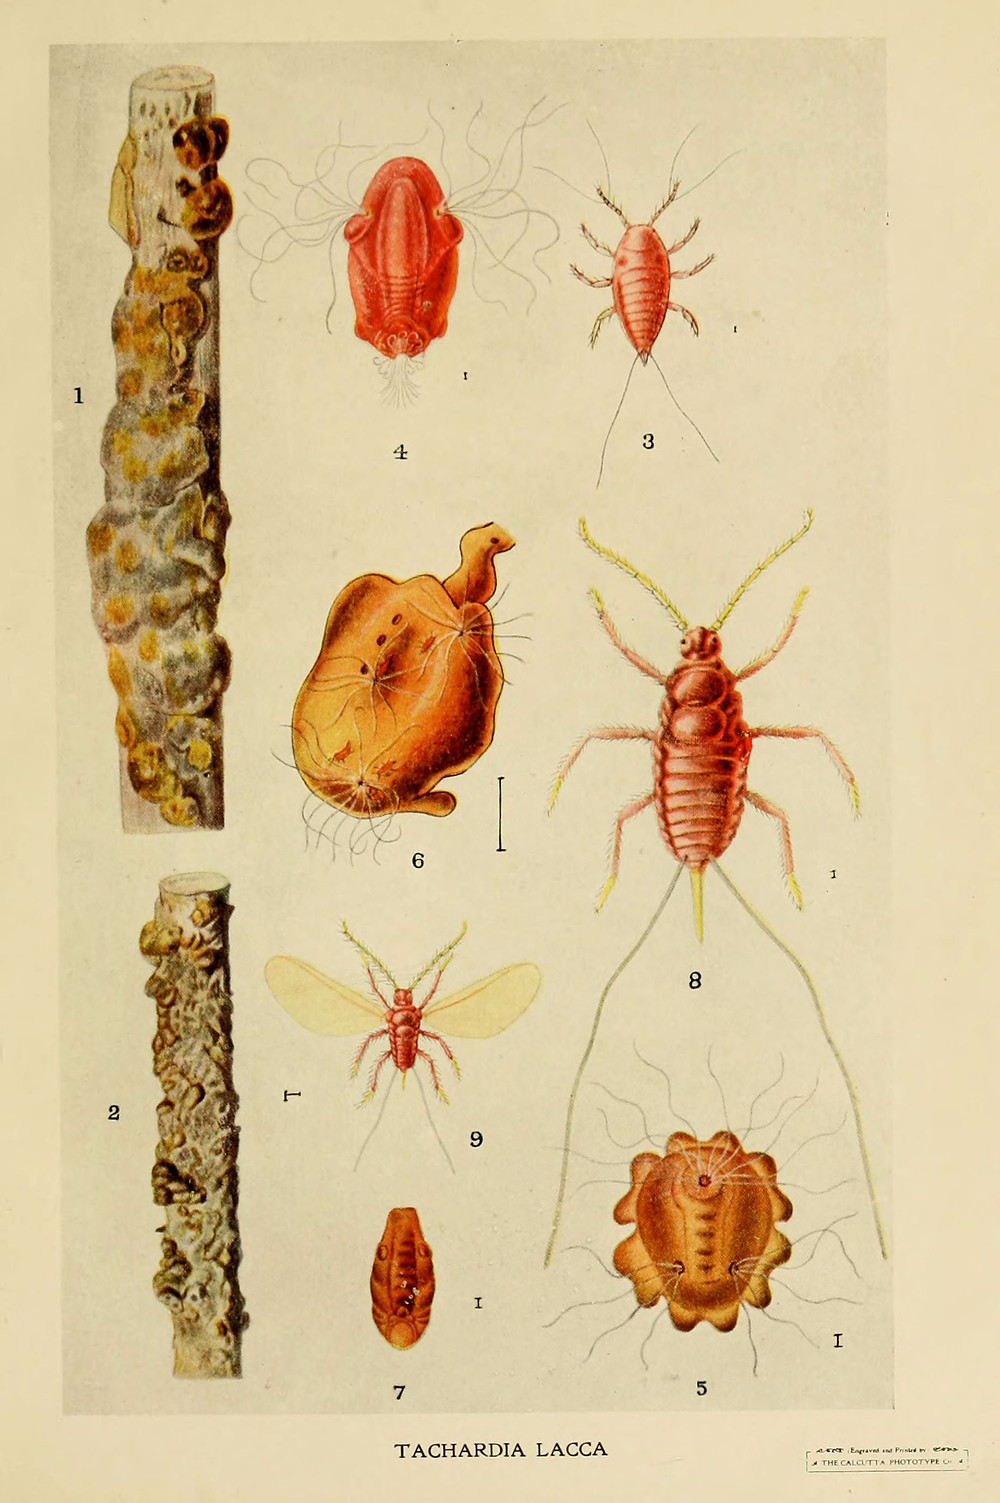 Drawing of the insect Kerria lacca and its shellac tubes, by Harold Maxwell-Lefroy, 1909